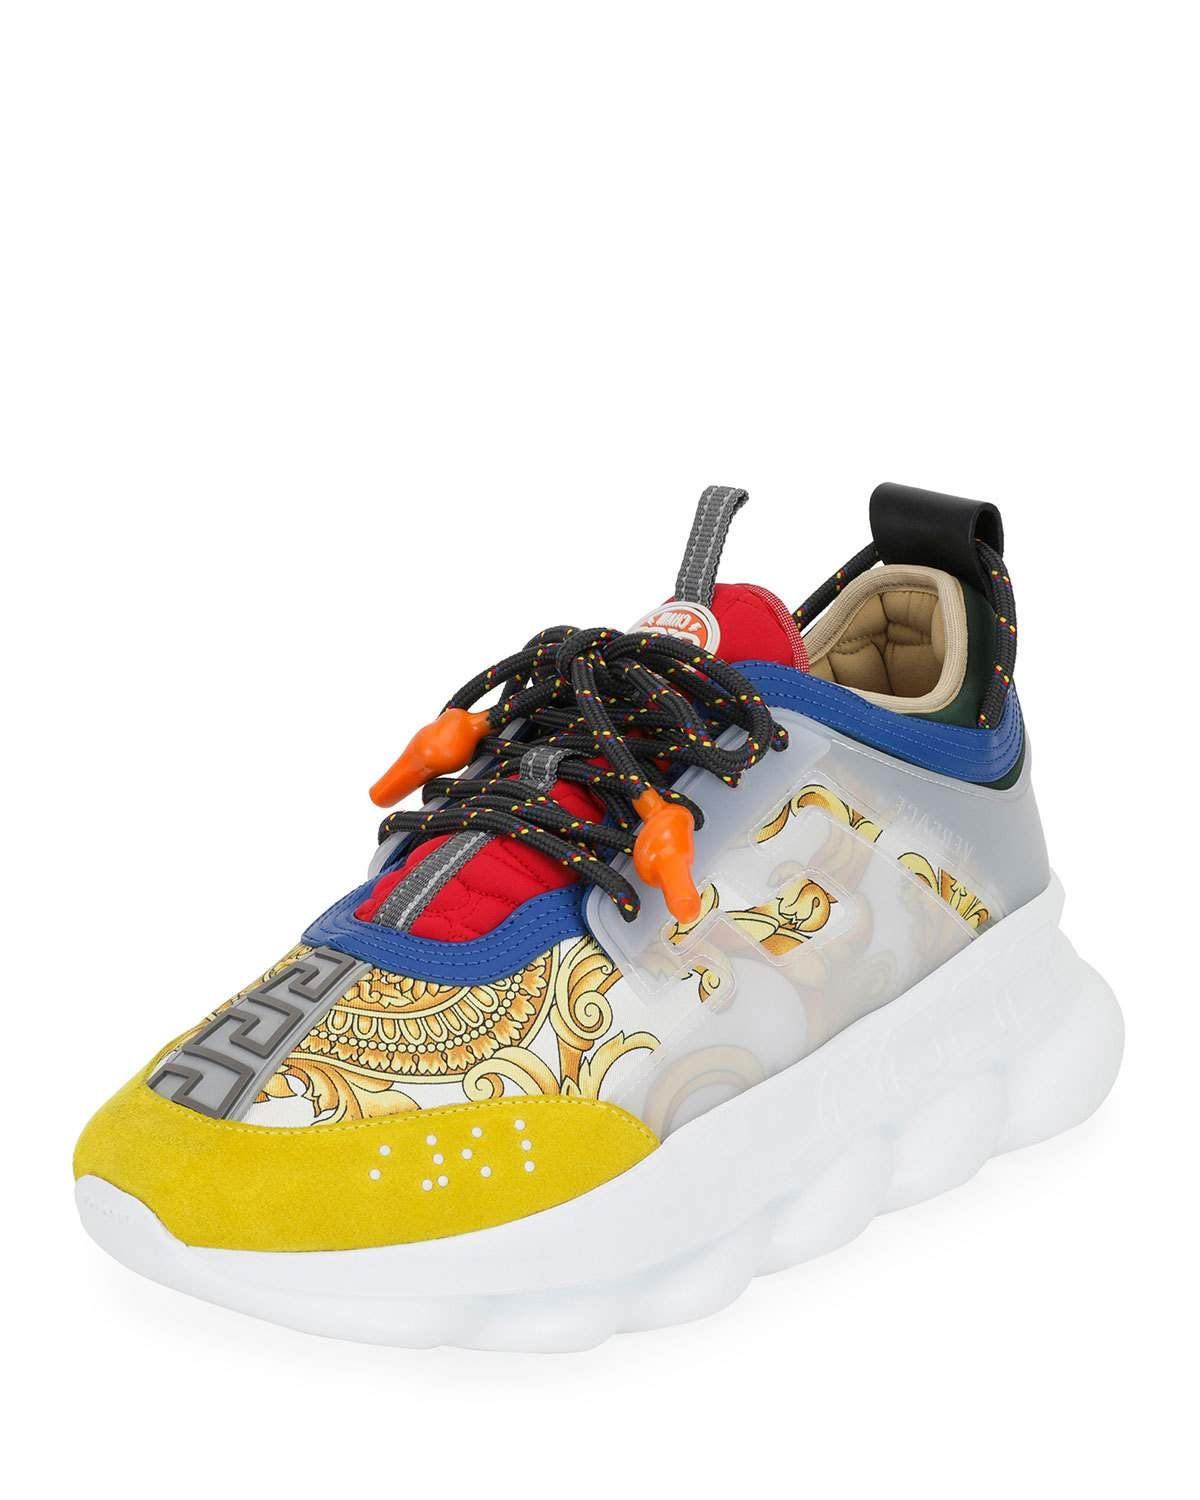 ed4a043846f7 VERSACE MEN S TRIBUTE CHAIN REACTION GREEK-KEY SNEAKERSMEN S CHAIN REACTION  SNEAKERS.  versace  shoes